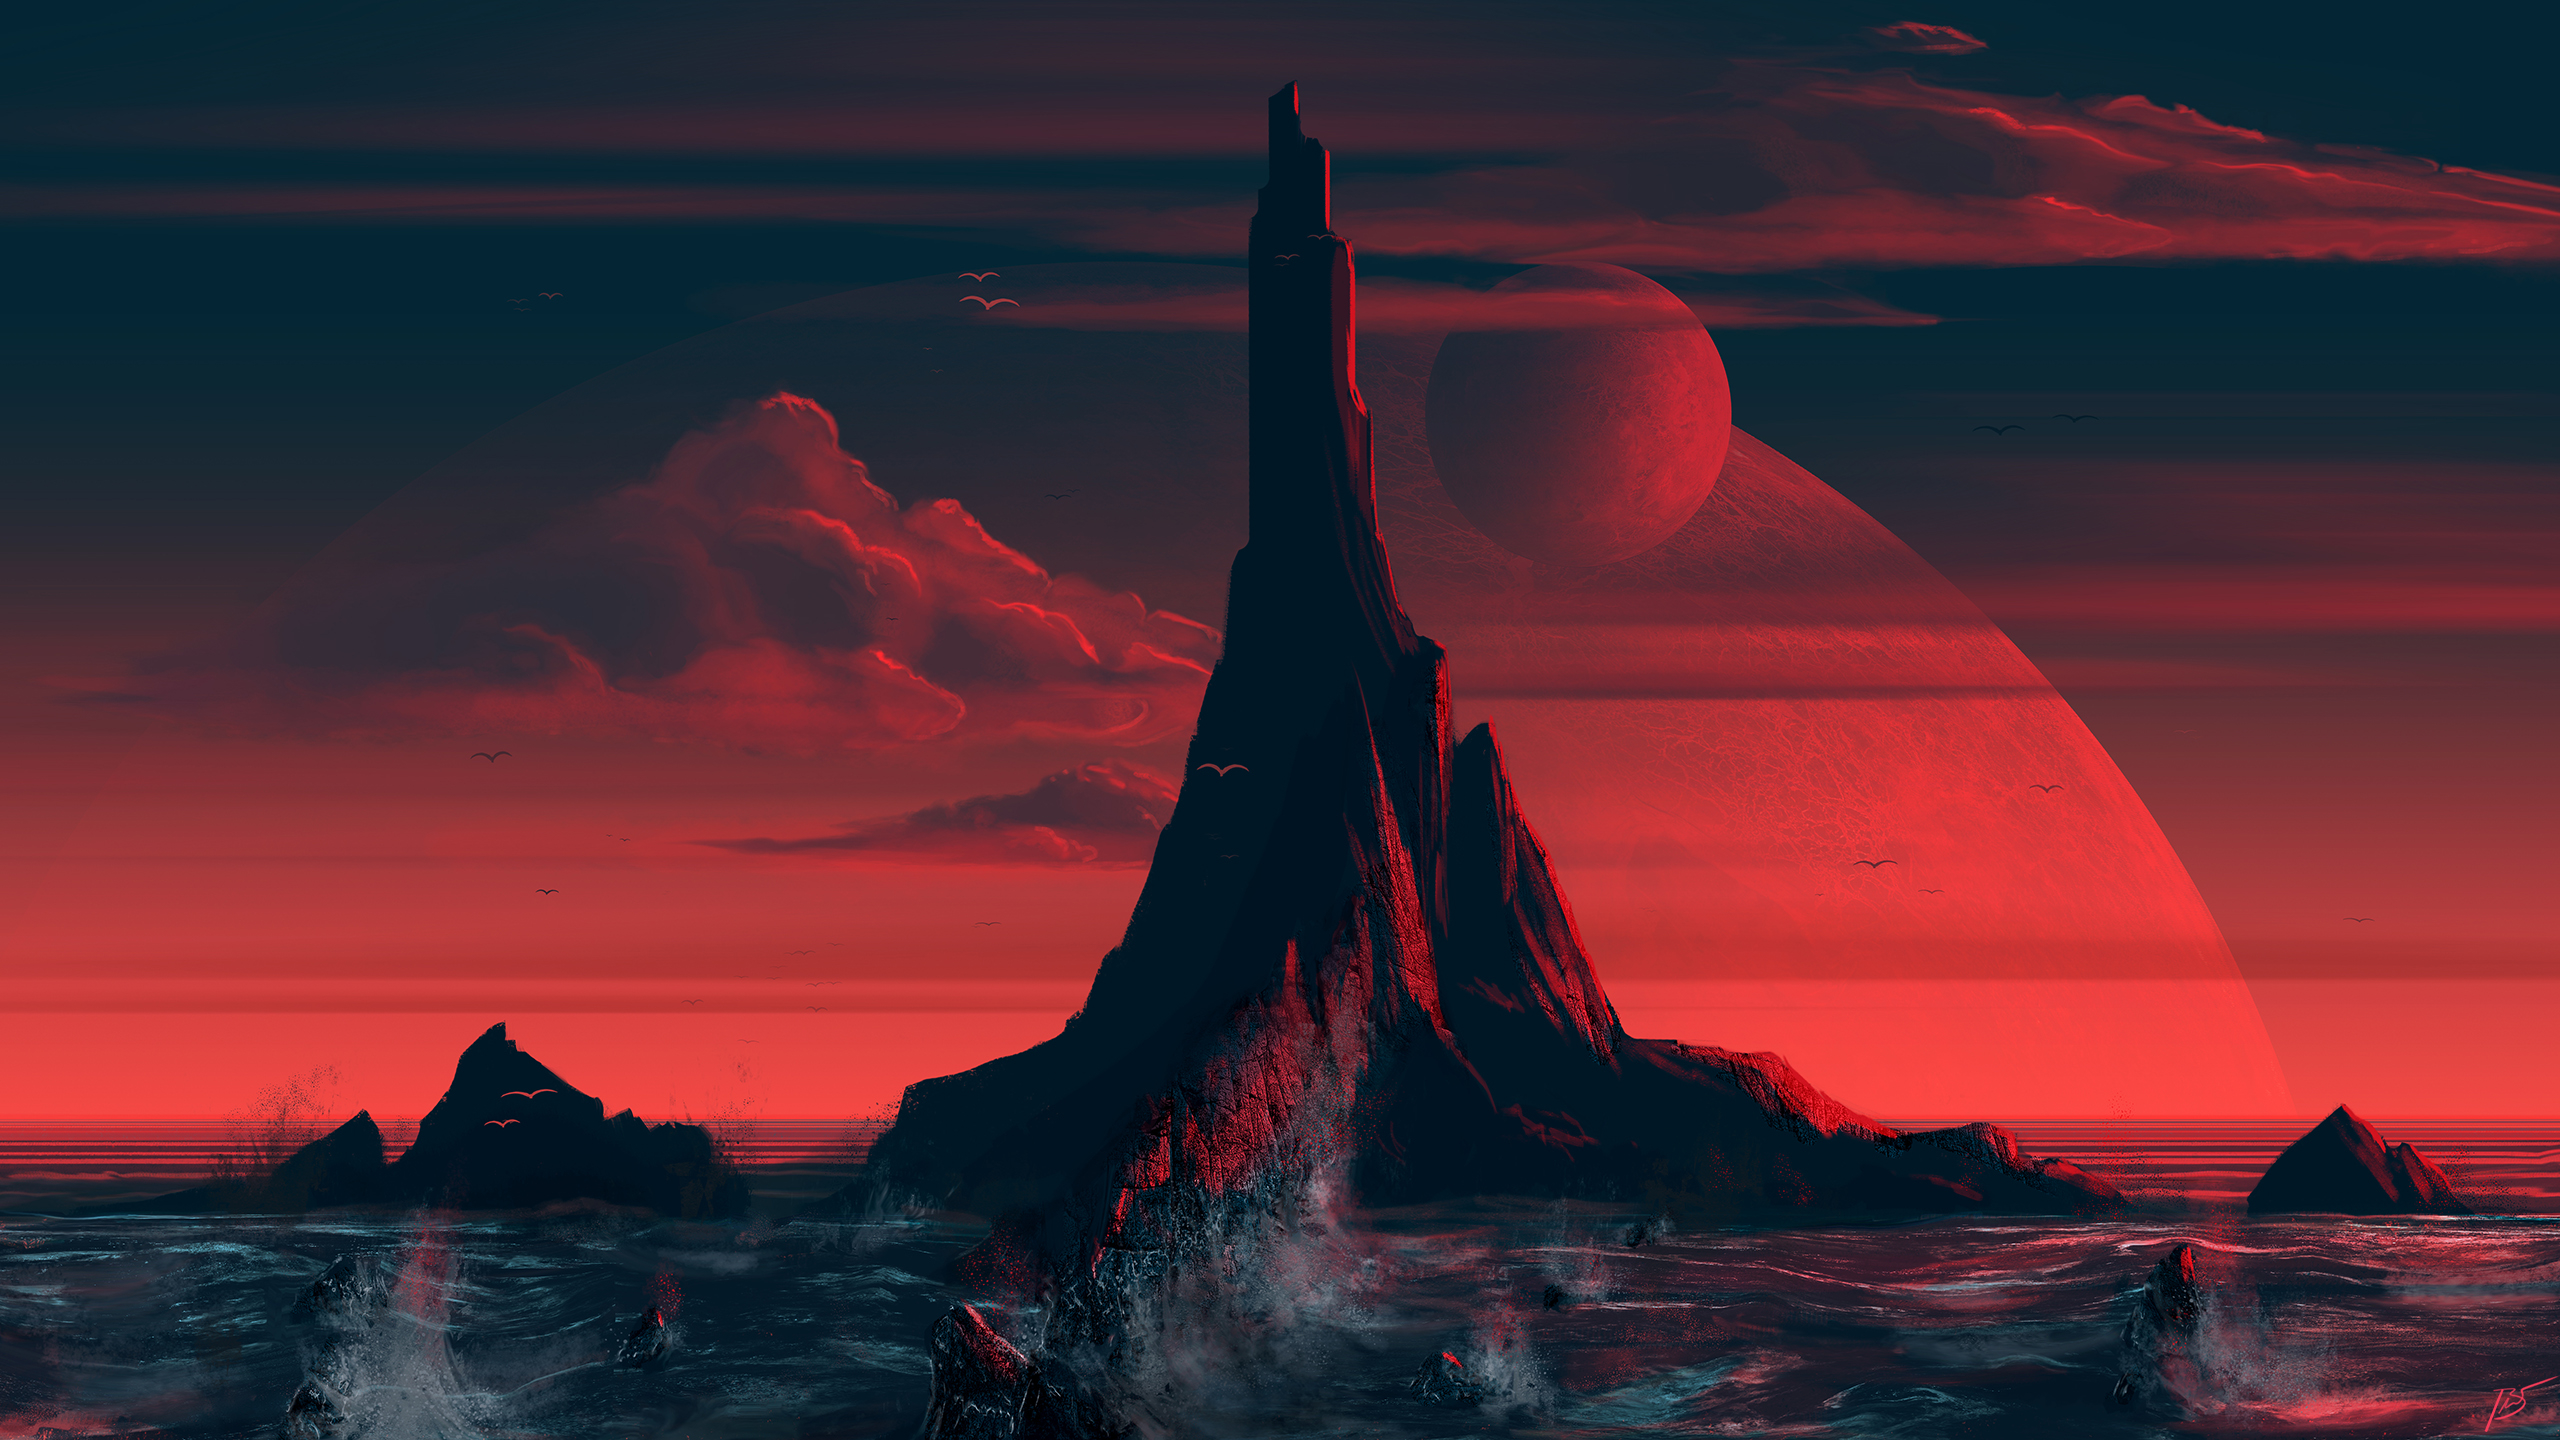 Red Island Wallpaper, HD Artist 4K Wallpapers, Images ...